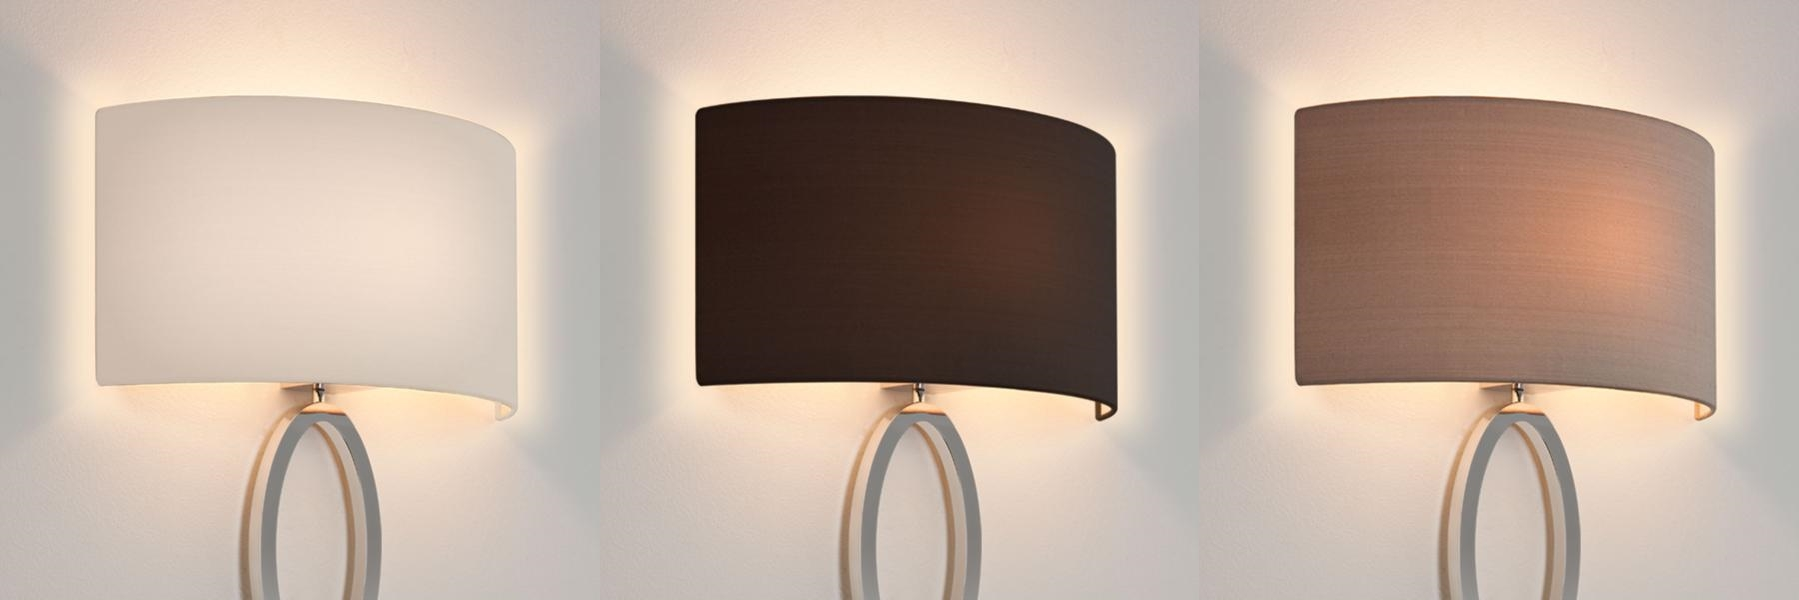 Wall Lamp With Shades : Lamp shades wall lights - your great choice for the ambience Warisan Lighting